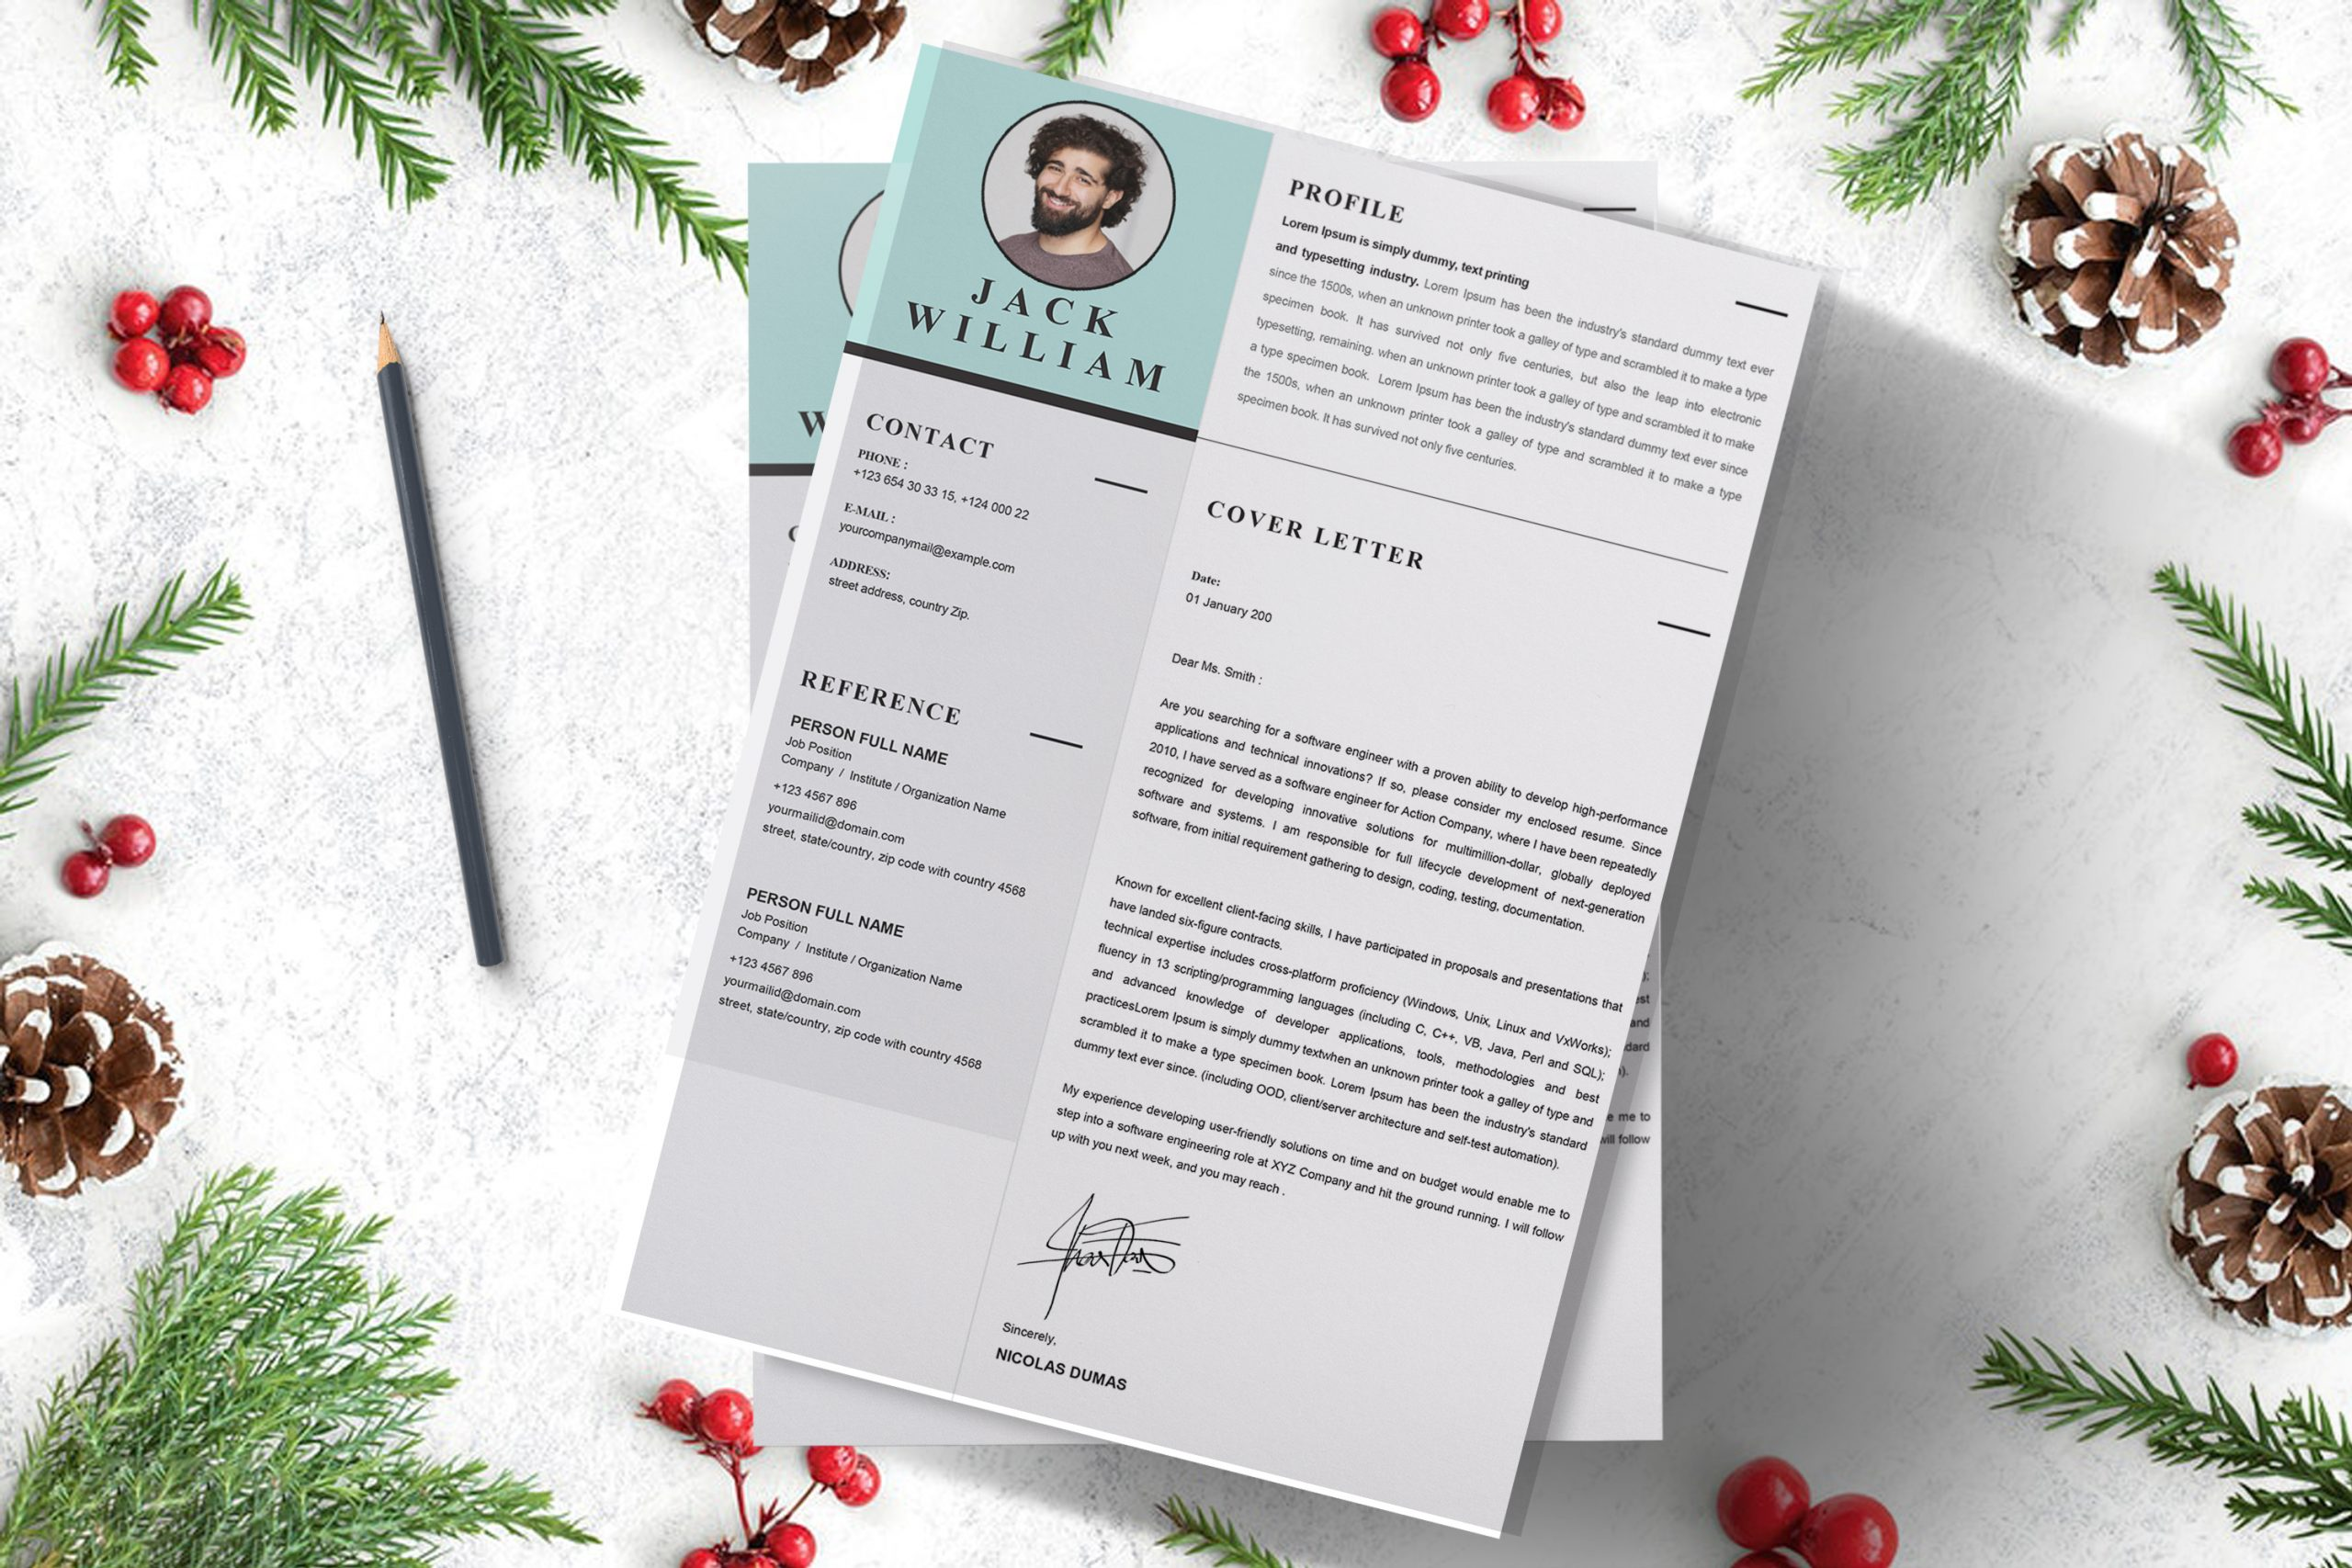 Creative-Infographic-Cover-Letter-3